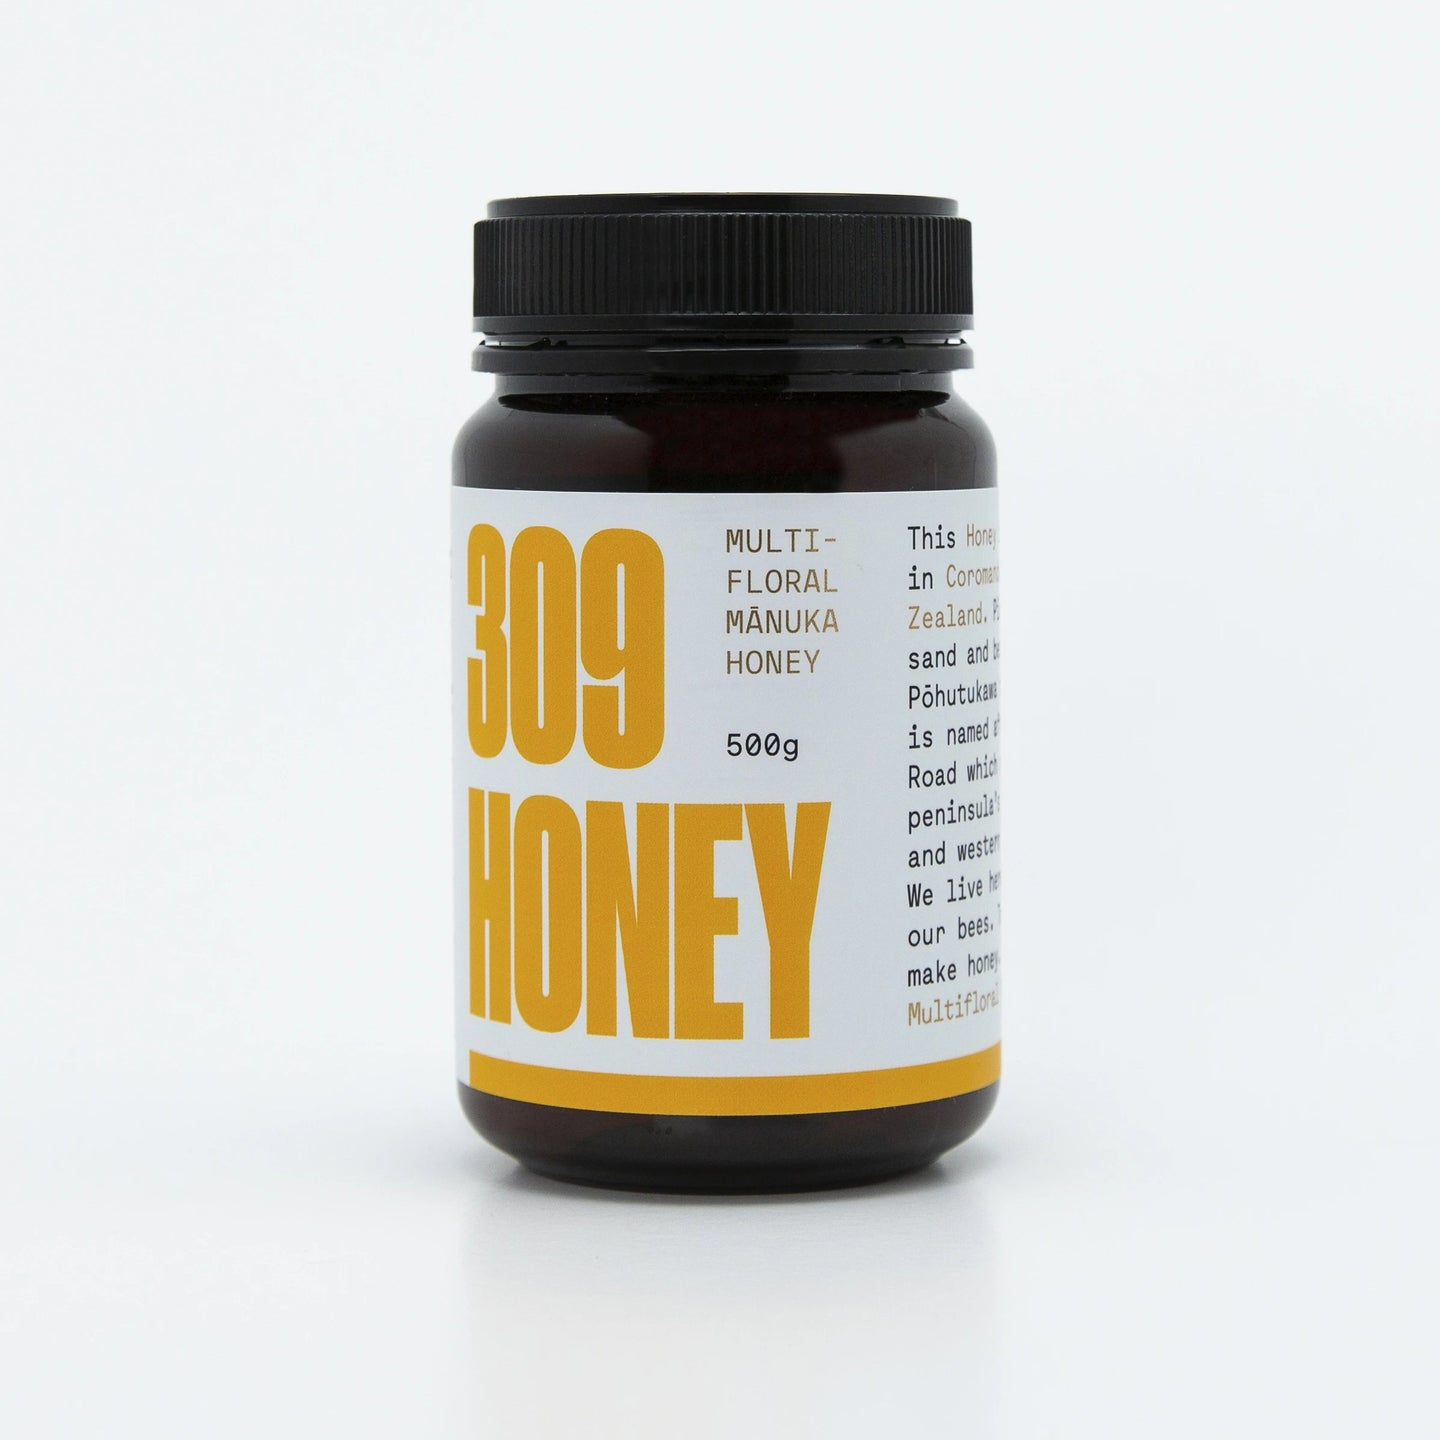 309 Multifloral Mānuka Honey